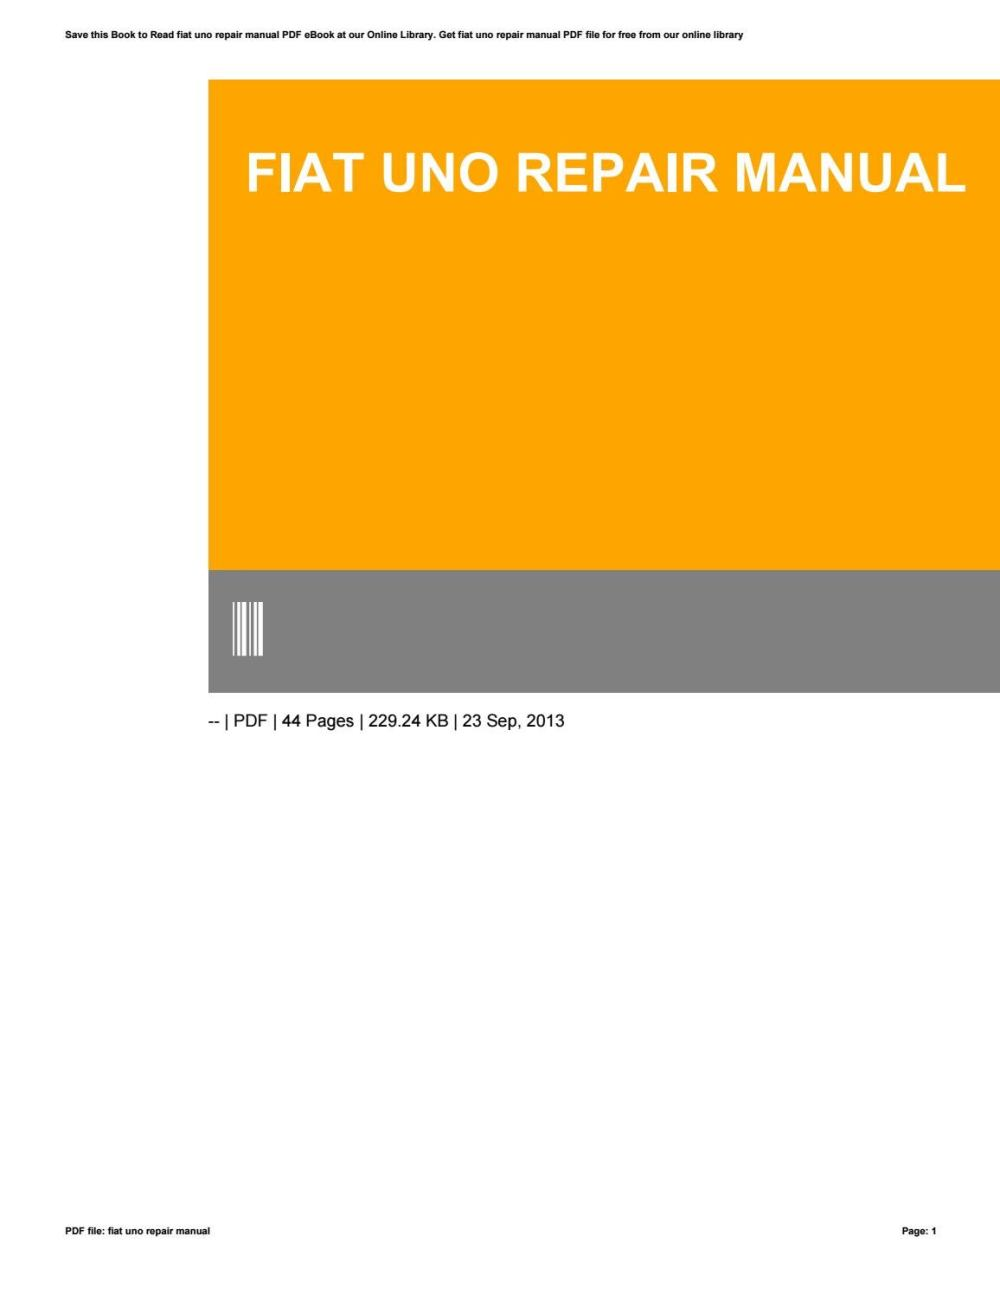 medium resolution of fiat uno manual free download